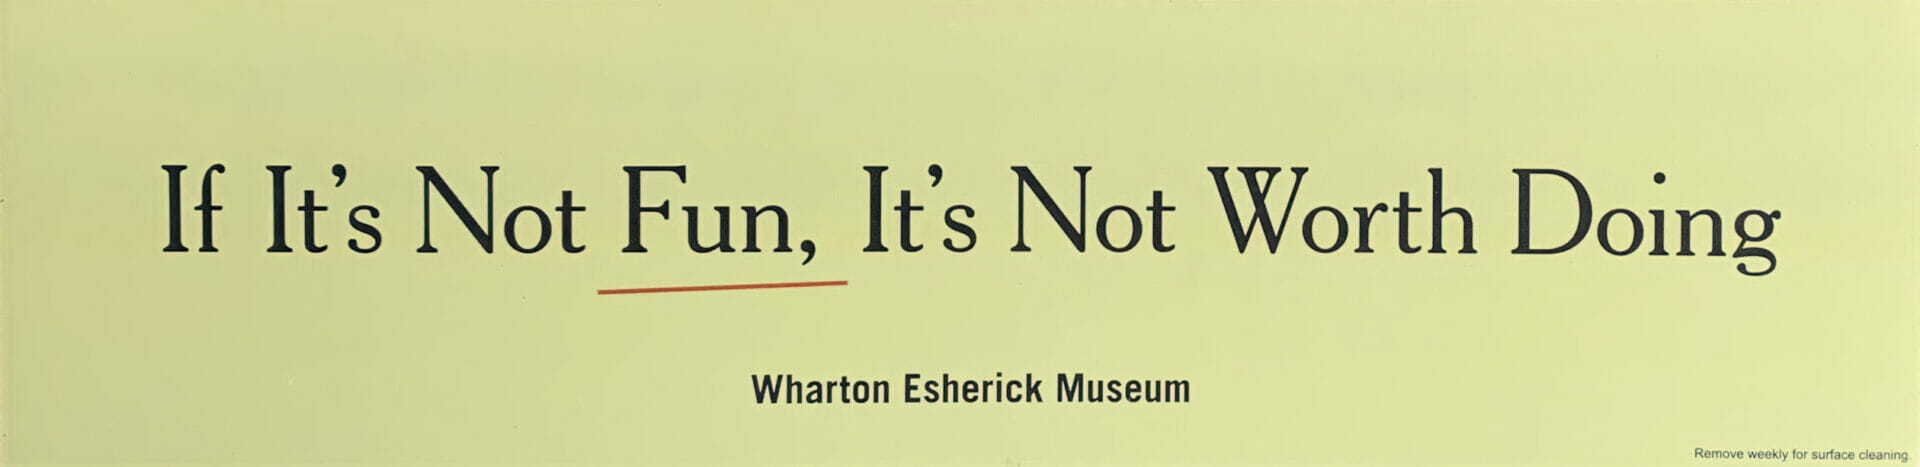 car magnet with esherick quote in black text